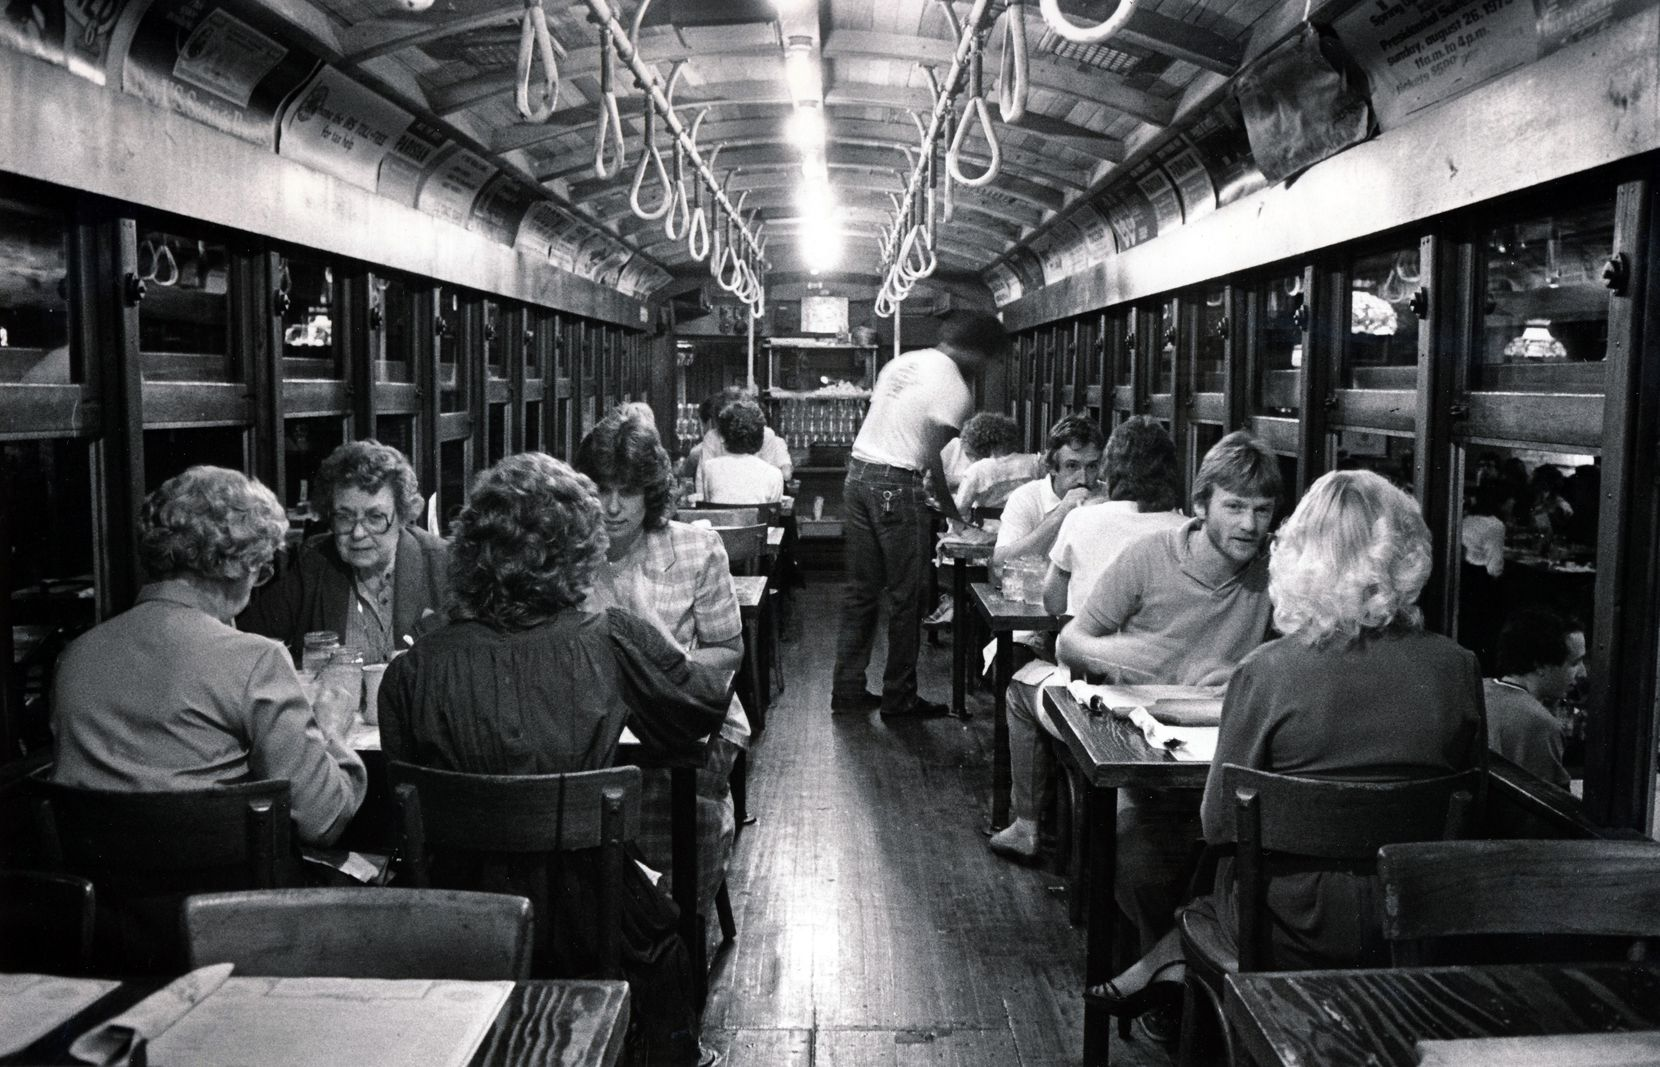 Diners eat inside the trolley at the Spaghetti Warehouse in Dallas' West End.